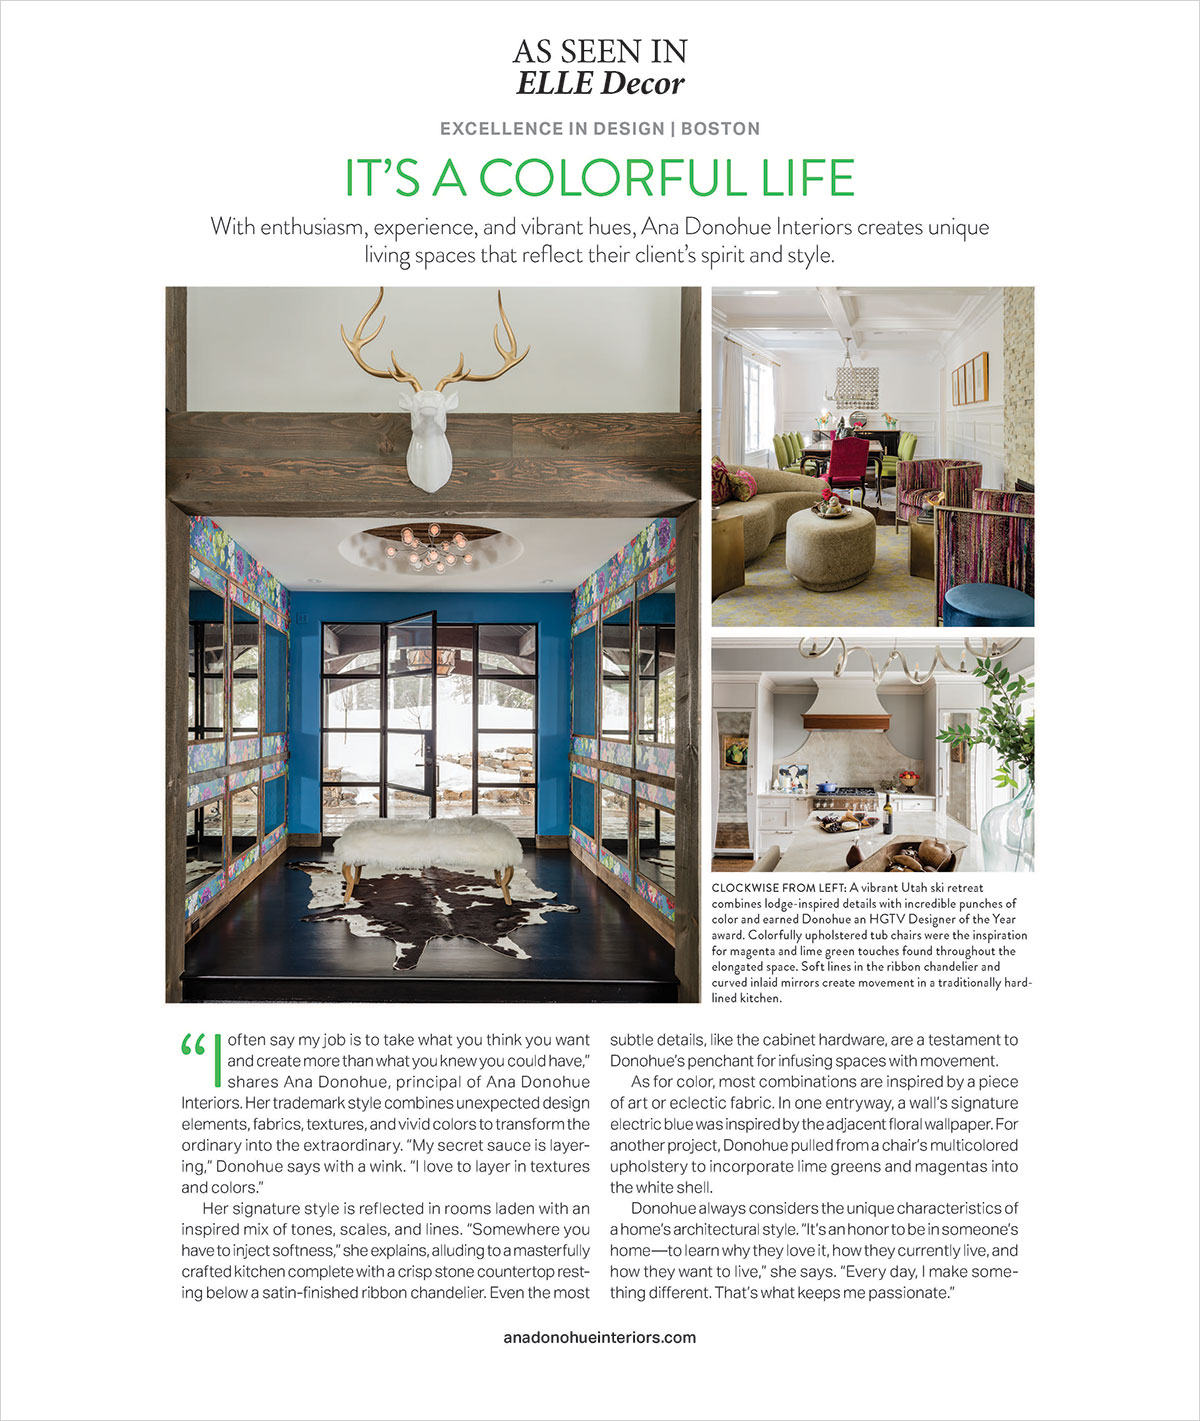 Elle Decor Magaine features Ana Donohue Interiors